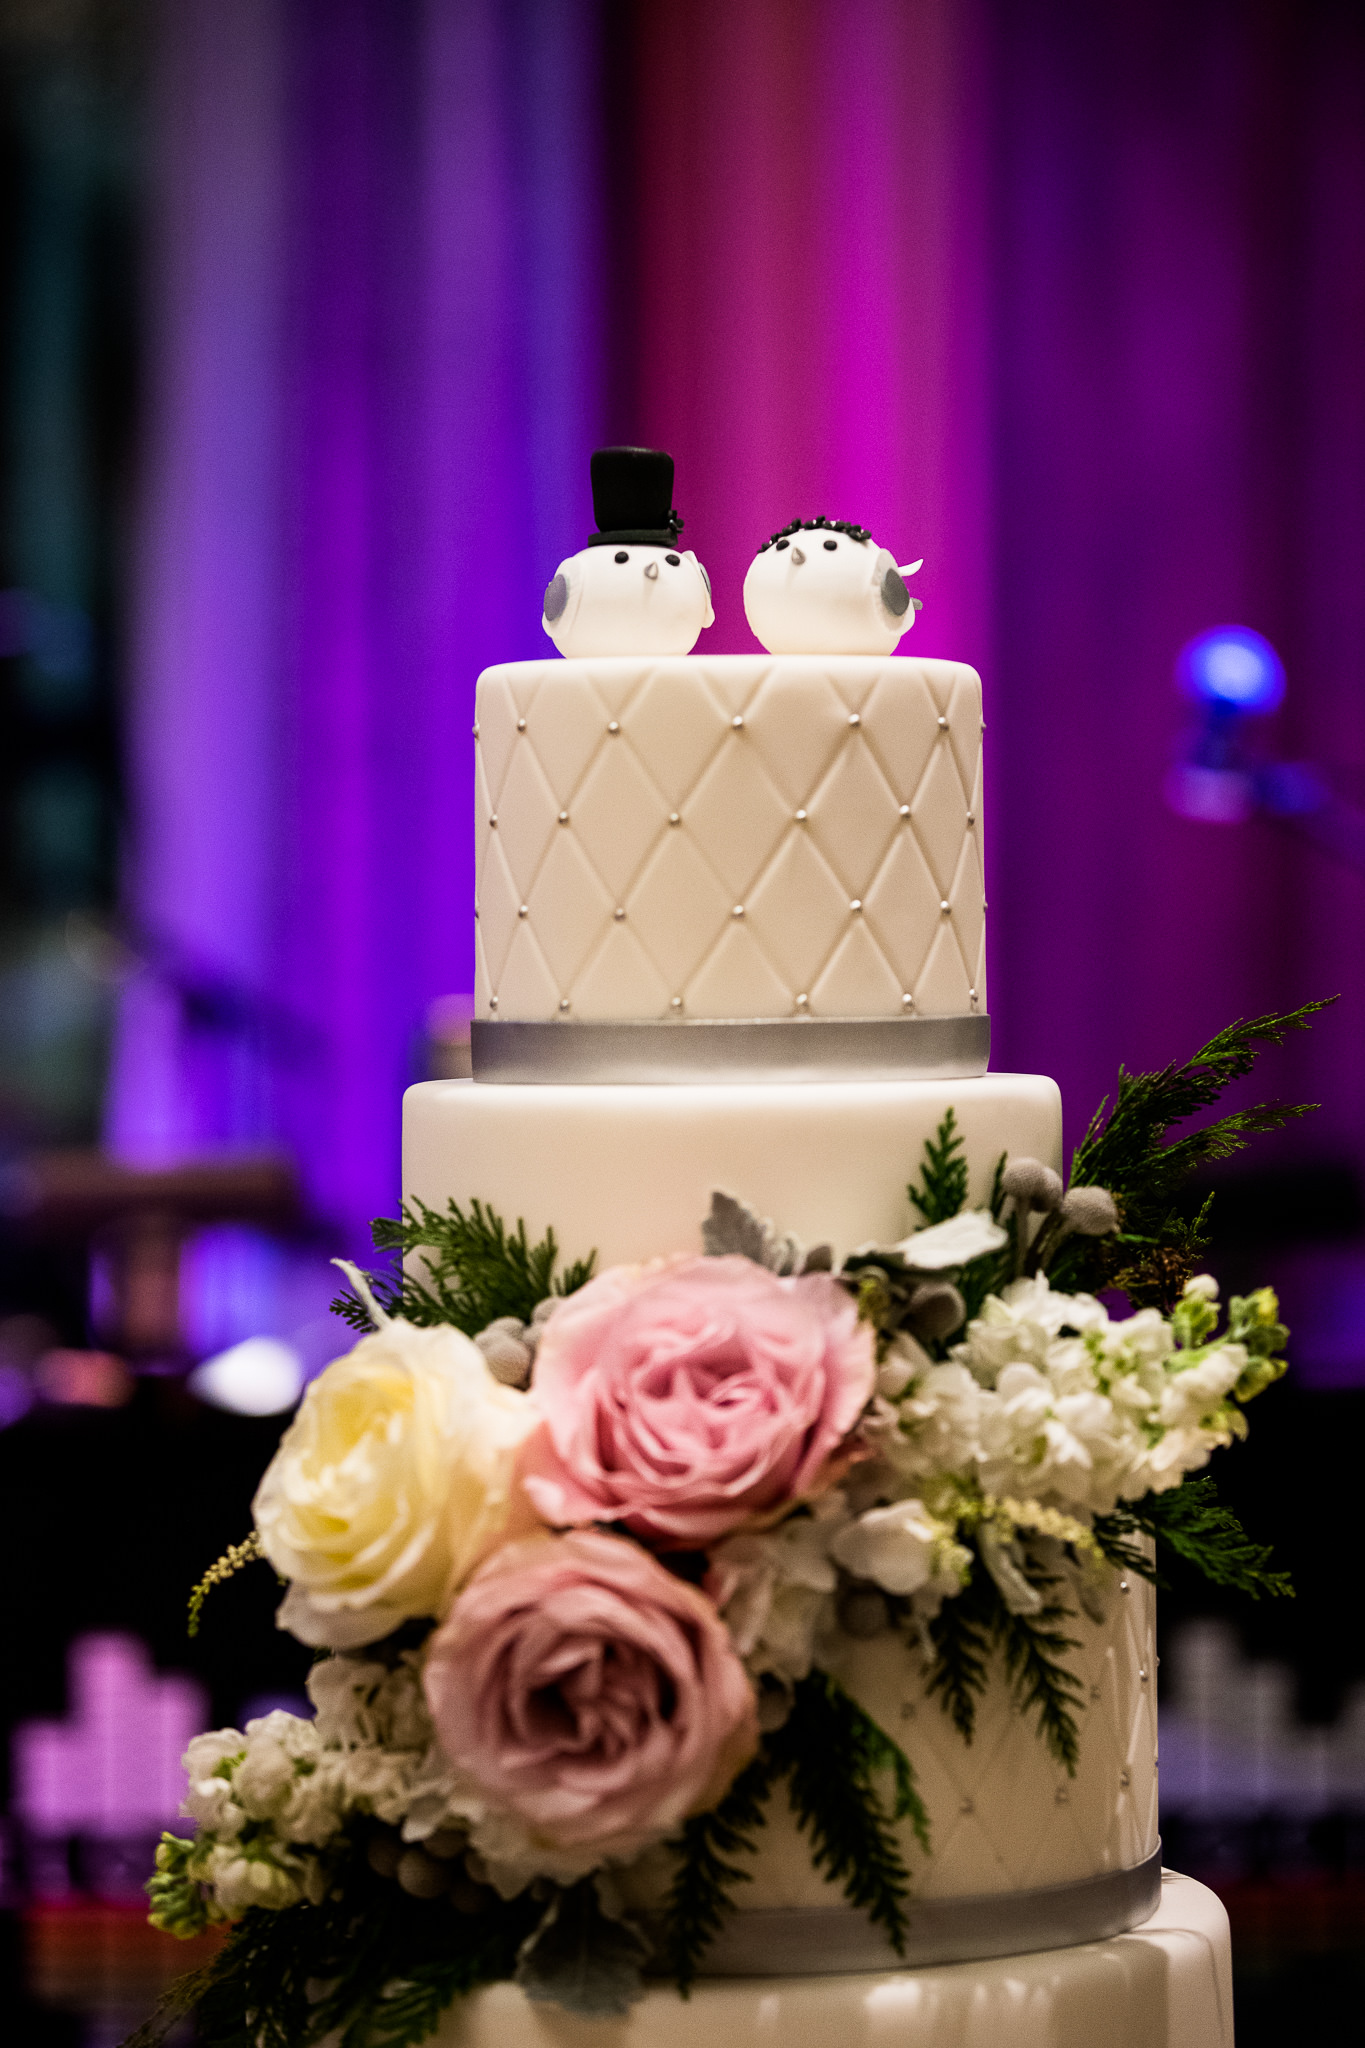 Gorgeous Wedding Cake with Two Birds Cake Topper